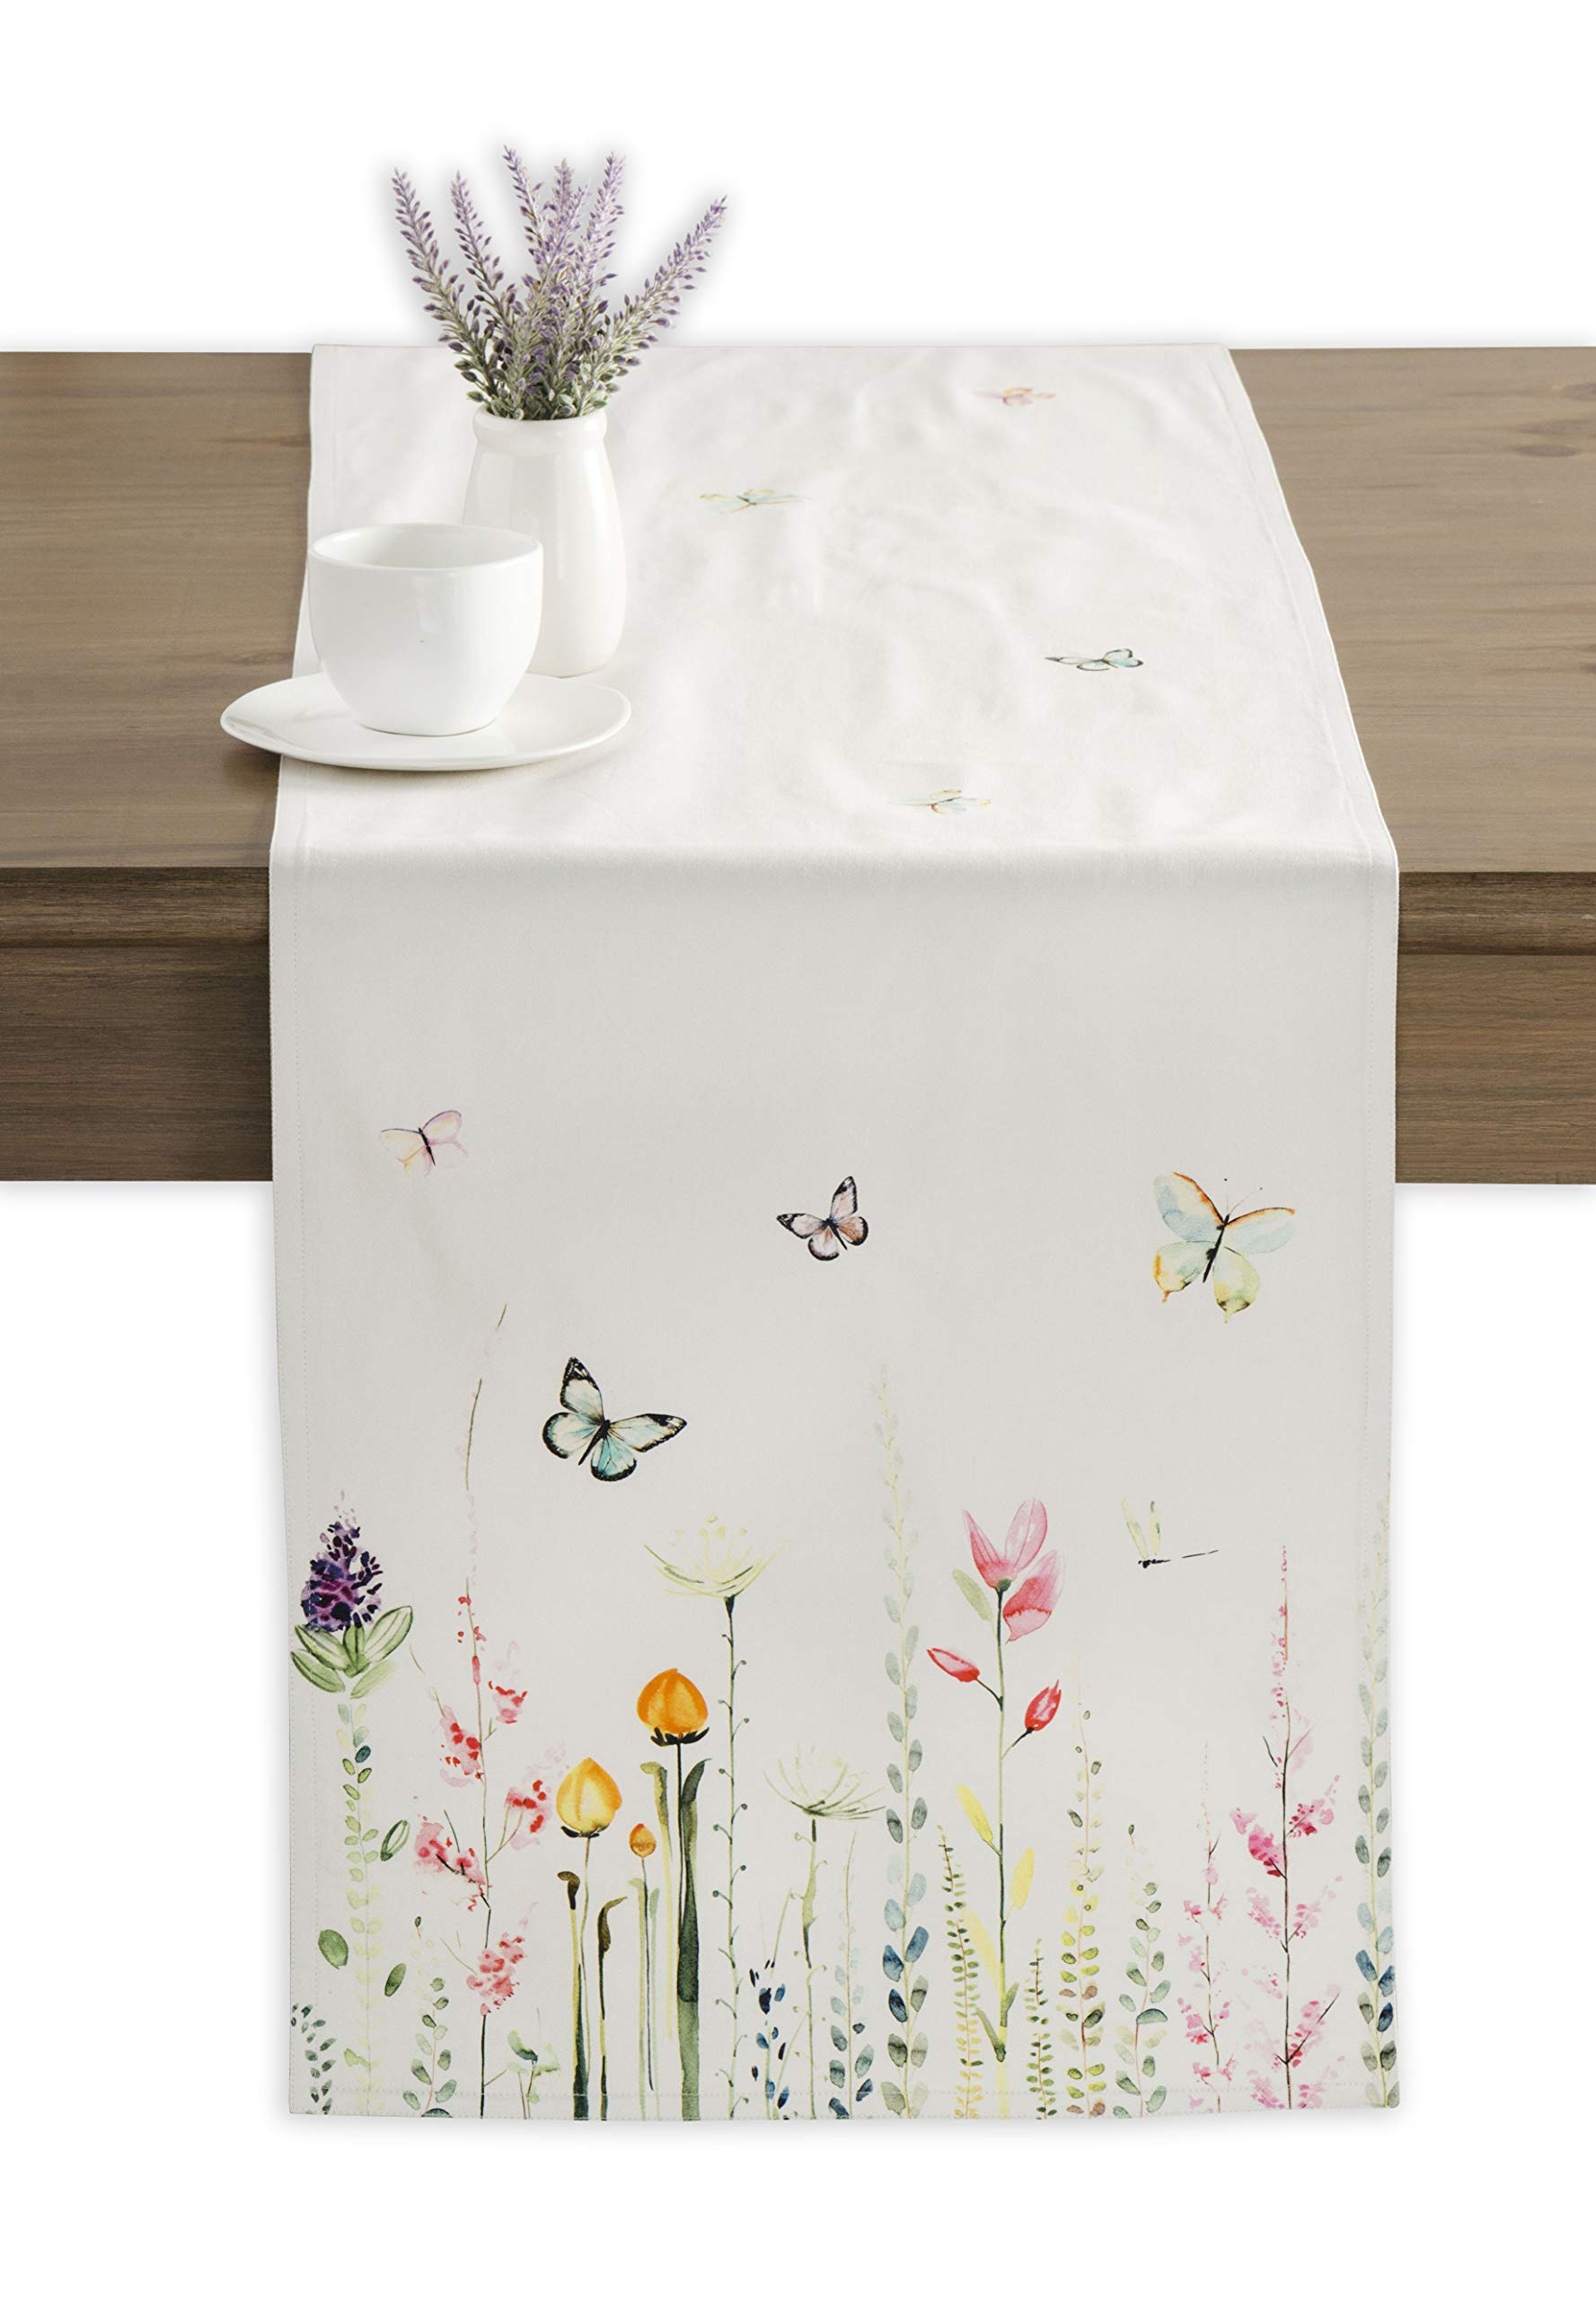 Maison d' Hermine Botanical Fresh 100% Cotton Table Runner 14.5 Inch by 108 Inch - Designed in Europe. 100% Cotton and machine washable. Package Includes : 1 Table Runner - table-runners, kitchen-dining-room-table-linens, kitchen-dining-room - 71y5JTutJ8L -